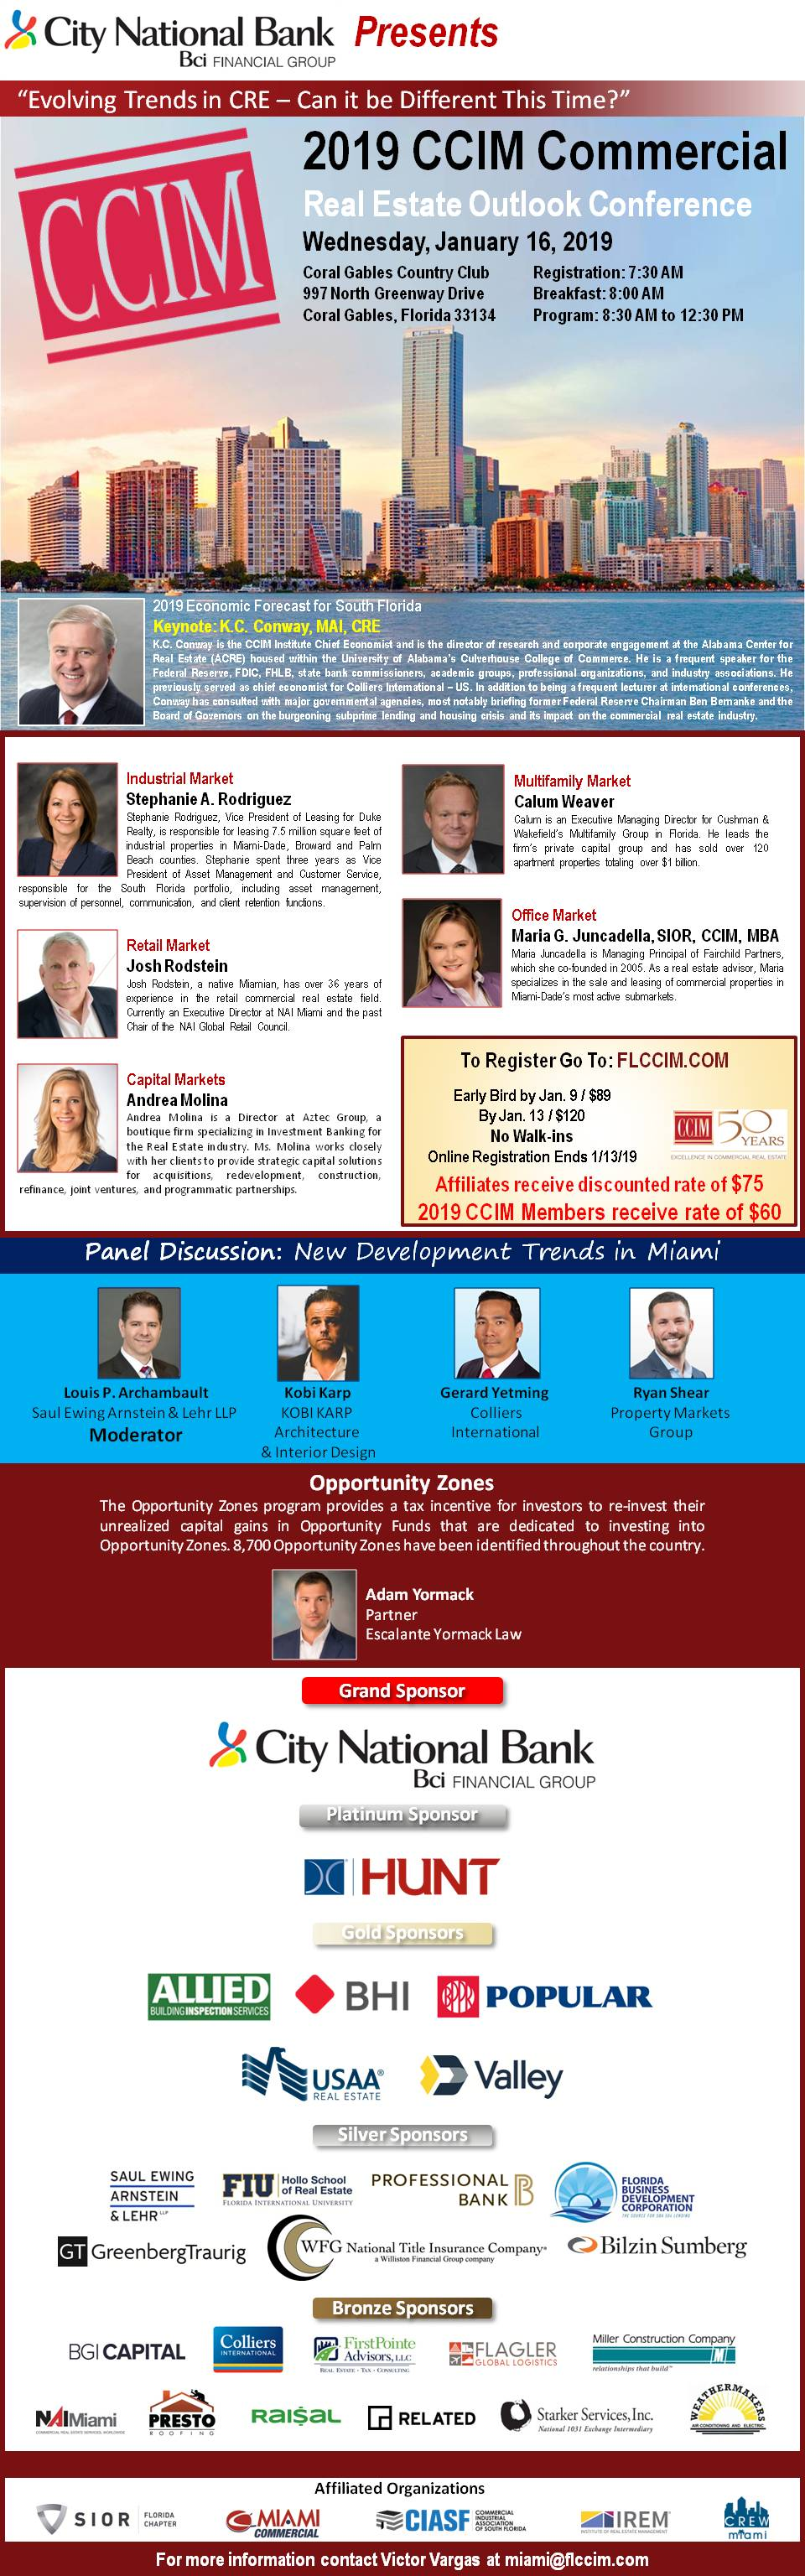 2019 CCIM Commercial Real Estate Outlook Conference